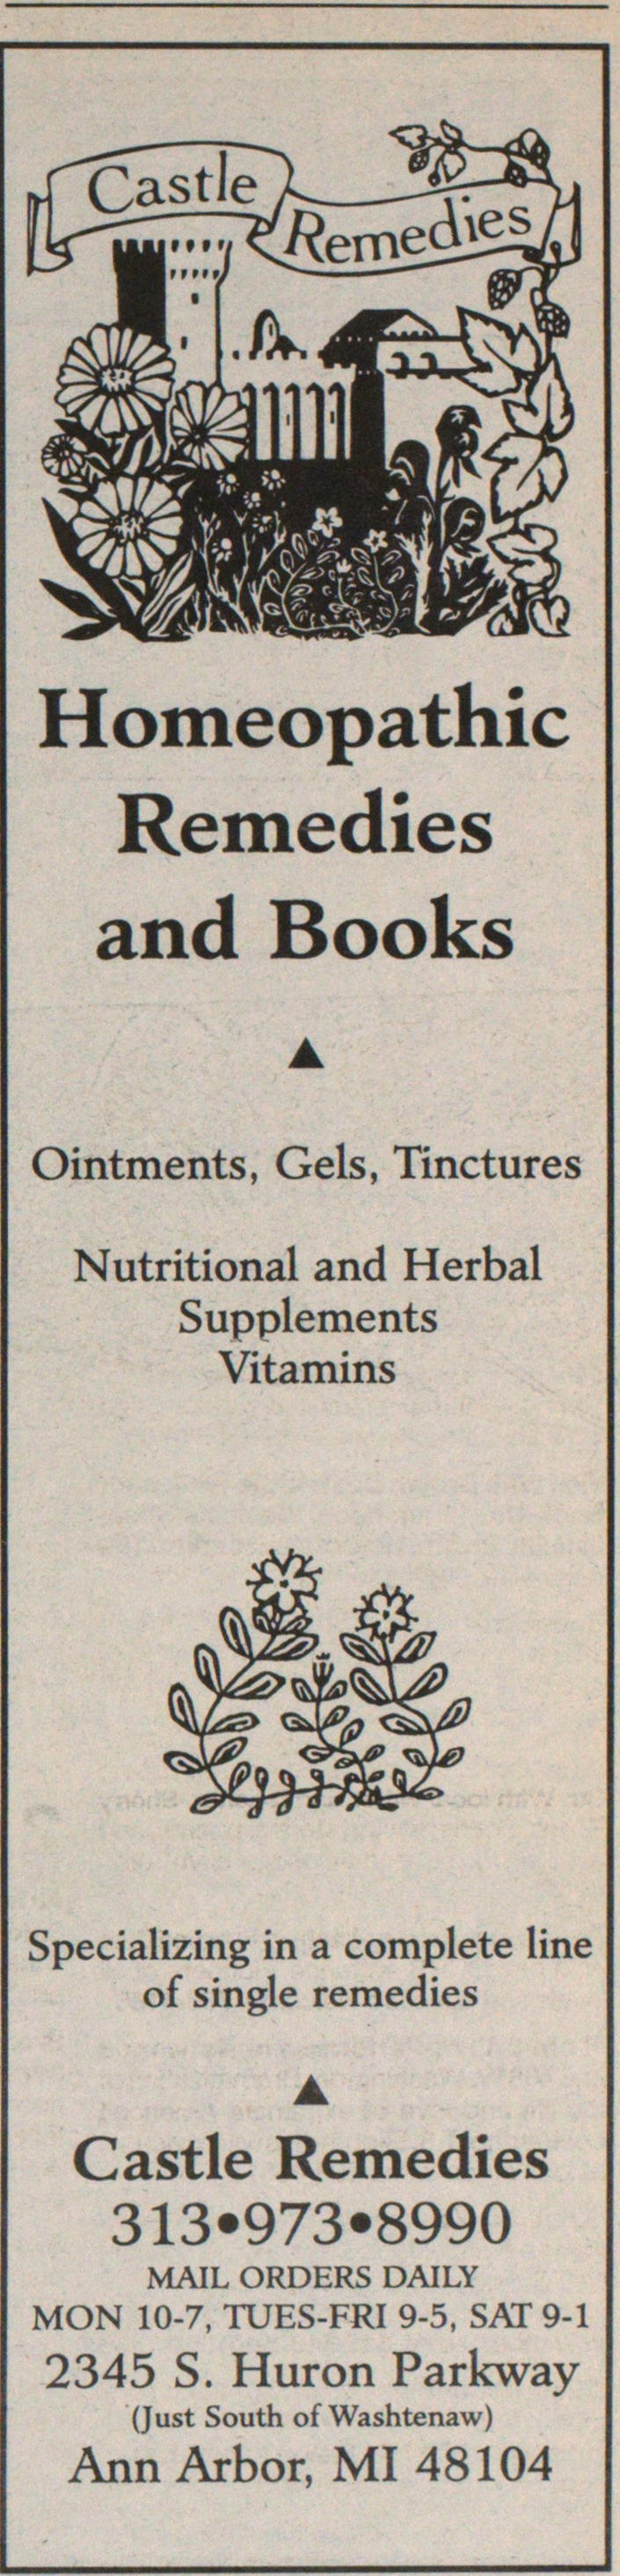 Homeopathic Remedies And Books image